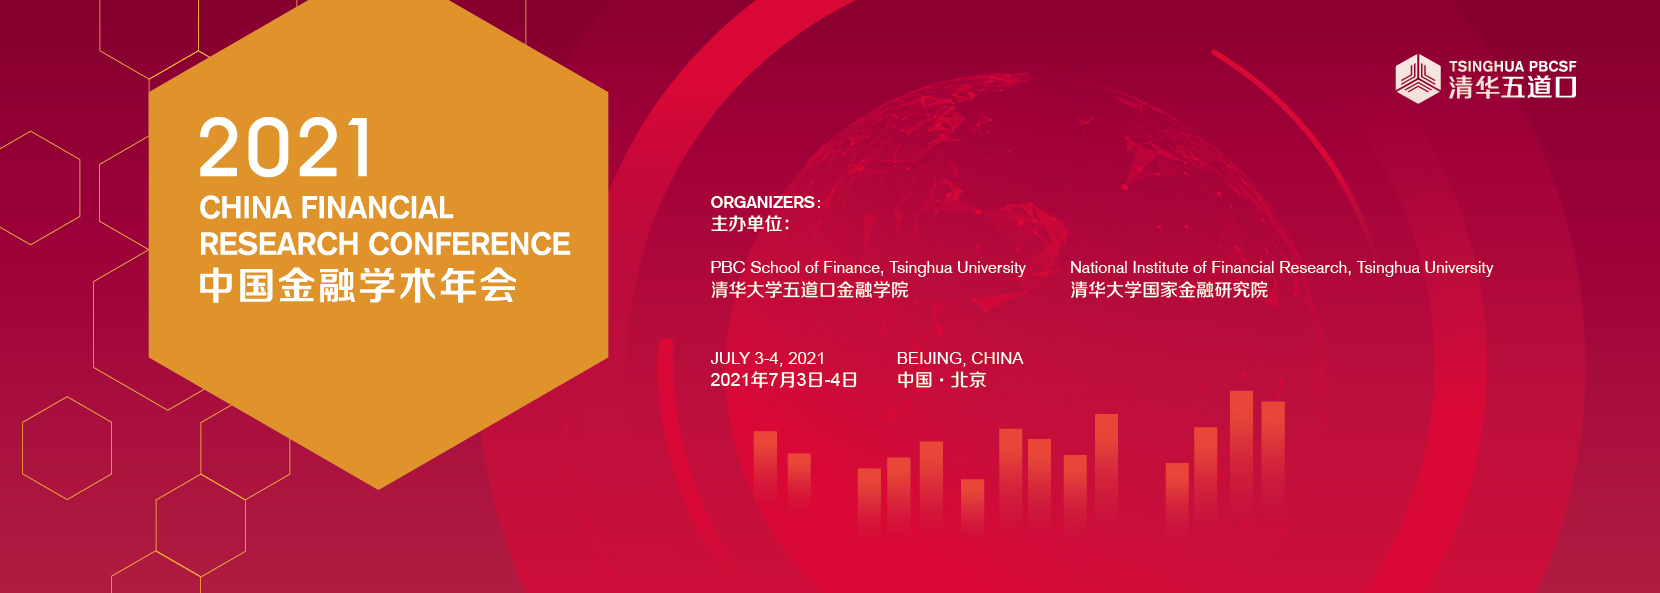 2021 China Financial Research Conference